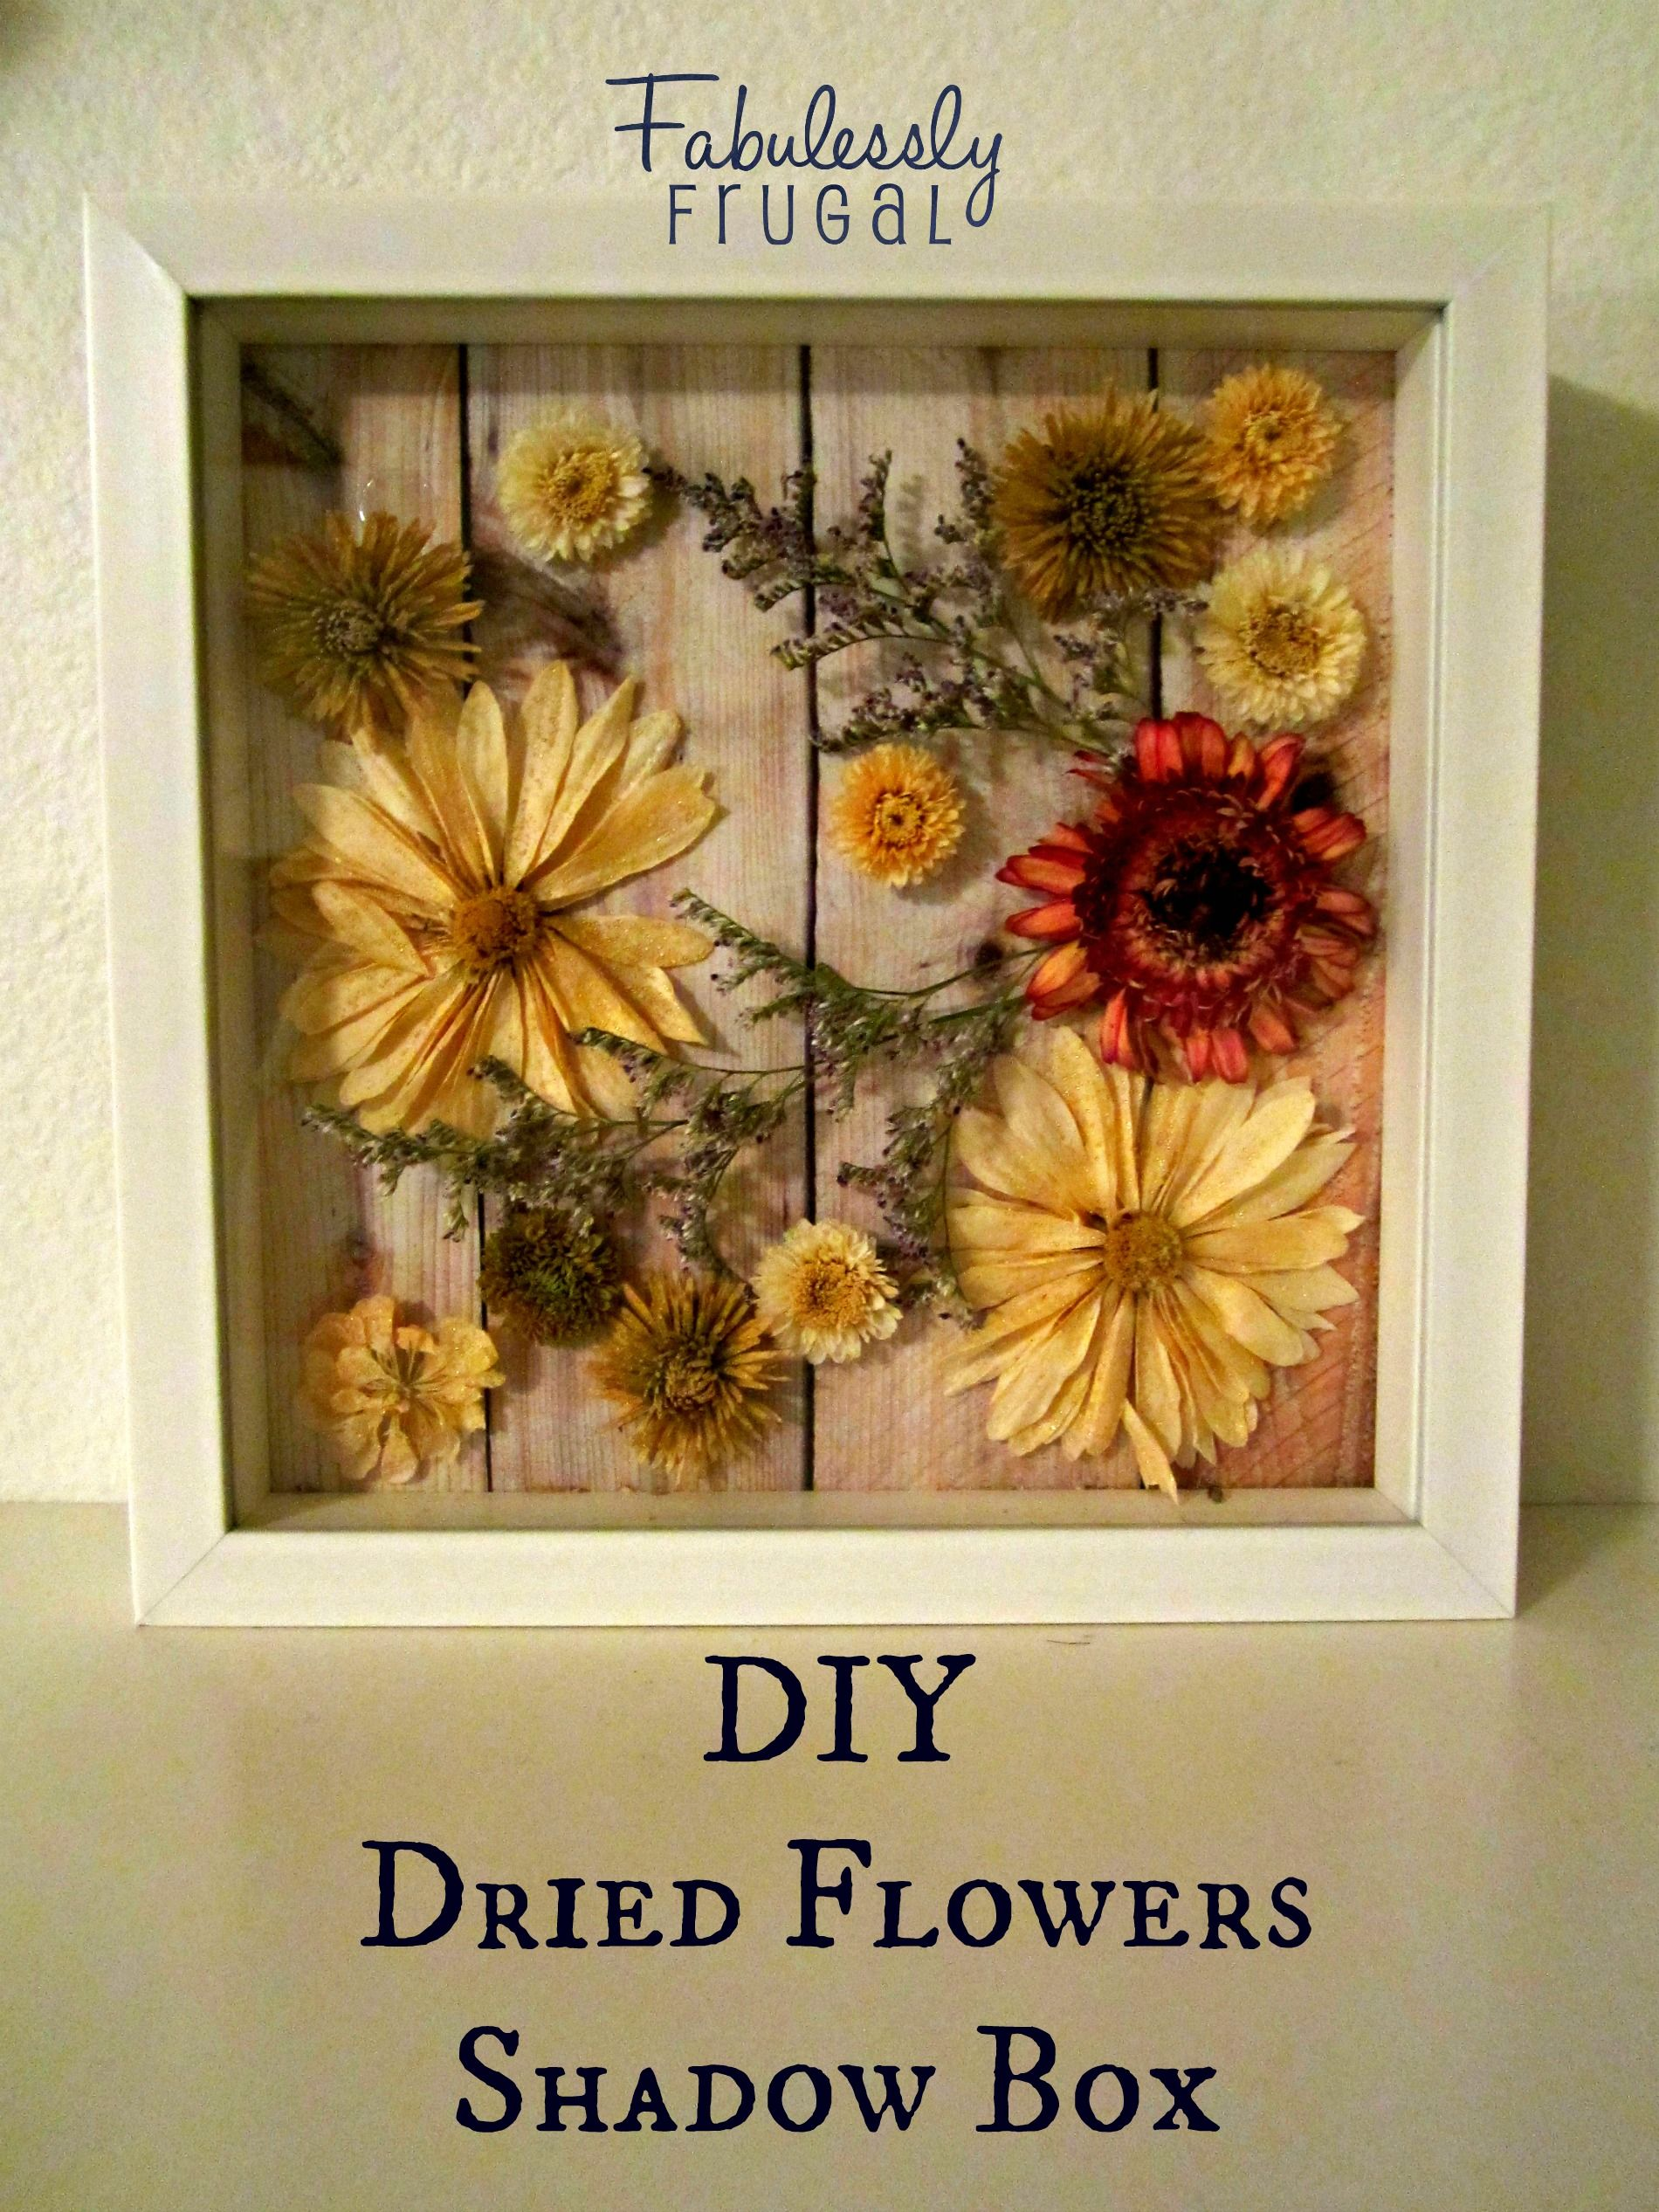 DIY Dried Flowers Shadow Box | Country Western & Rustic Misc ...